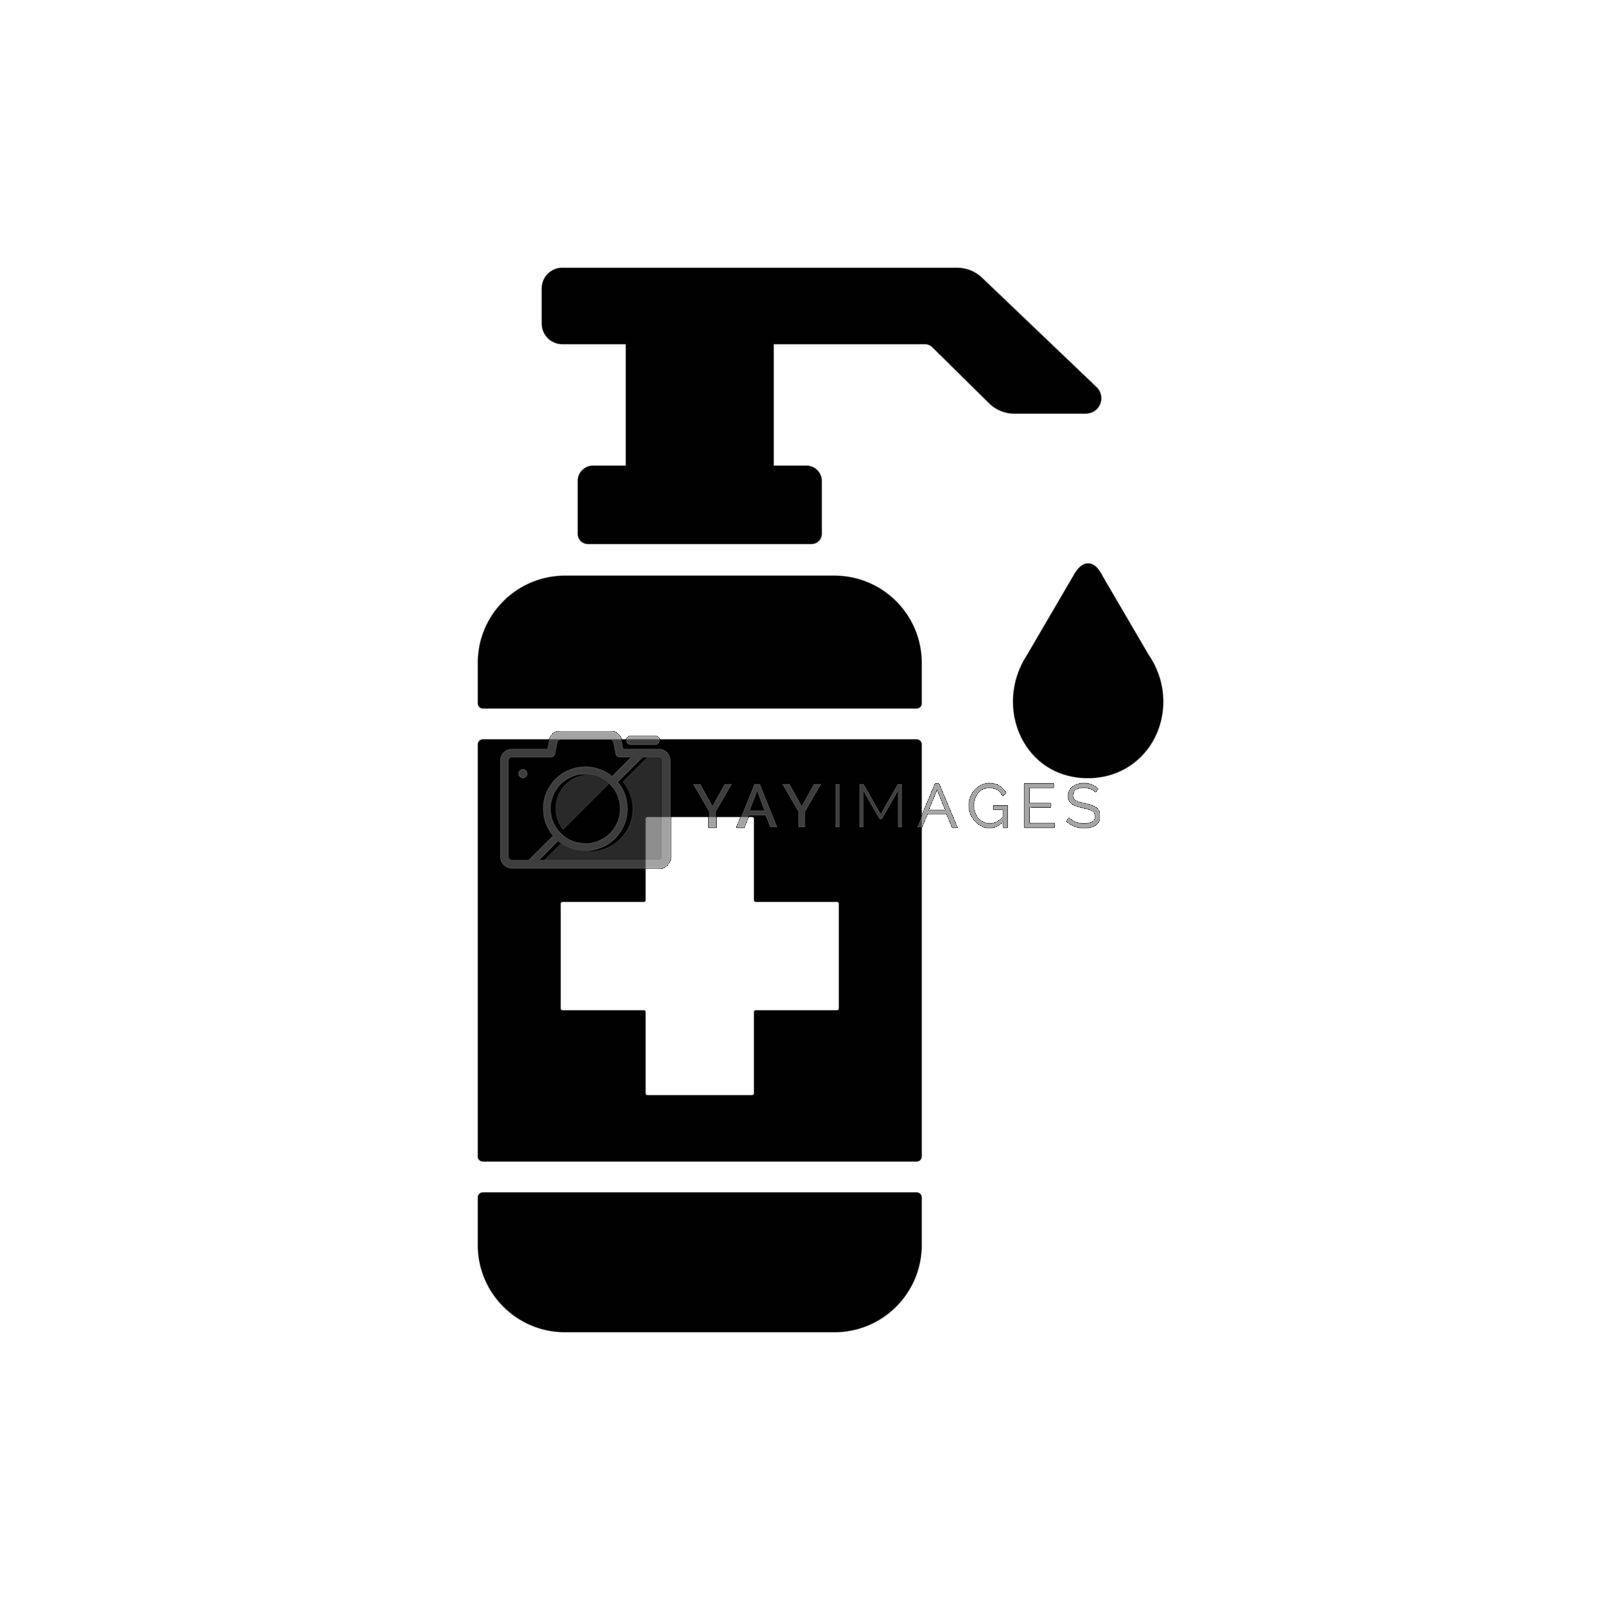 Washing hand with sanitizer liquid soap vector glyph icon. Coronavirus. Graph symbol for medical web site and apps design, logo, app, UI